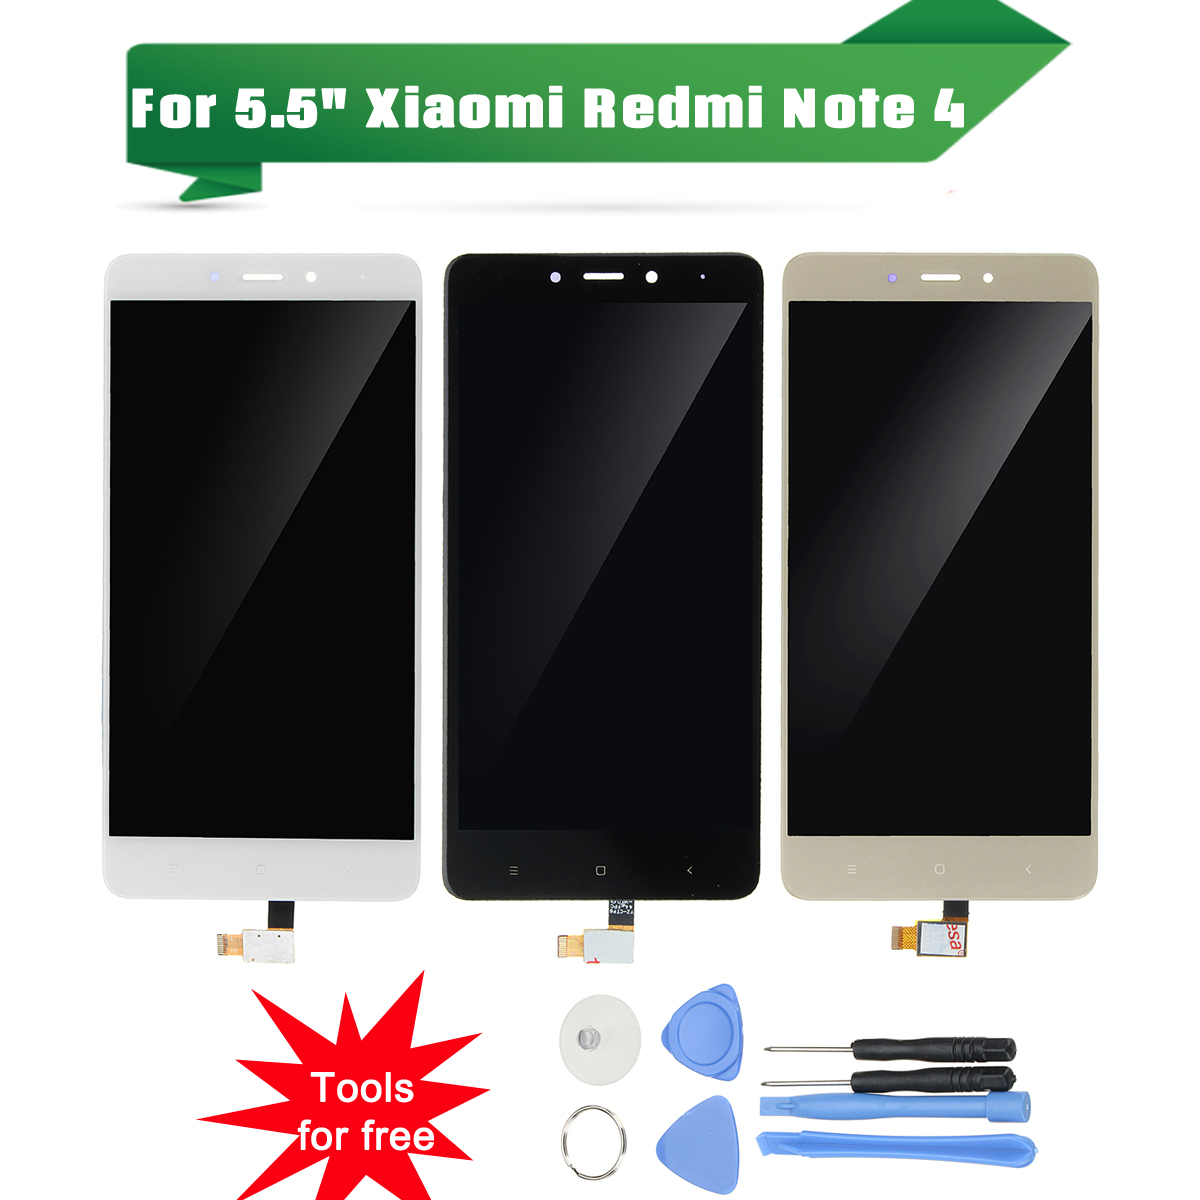 Leory 1Pcs Black/White/Gold LCD Display Digitizer Screen Mobile Phone LCDs With Free Tools for Xiaomi for Redmi Note 4 5.5 Inch